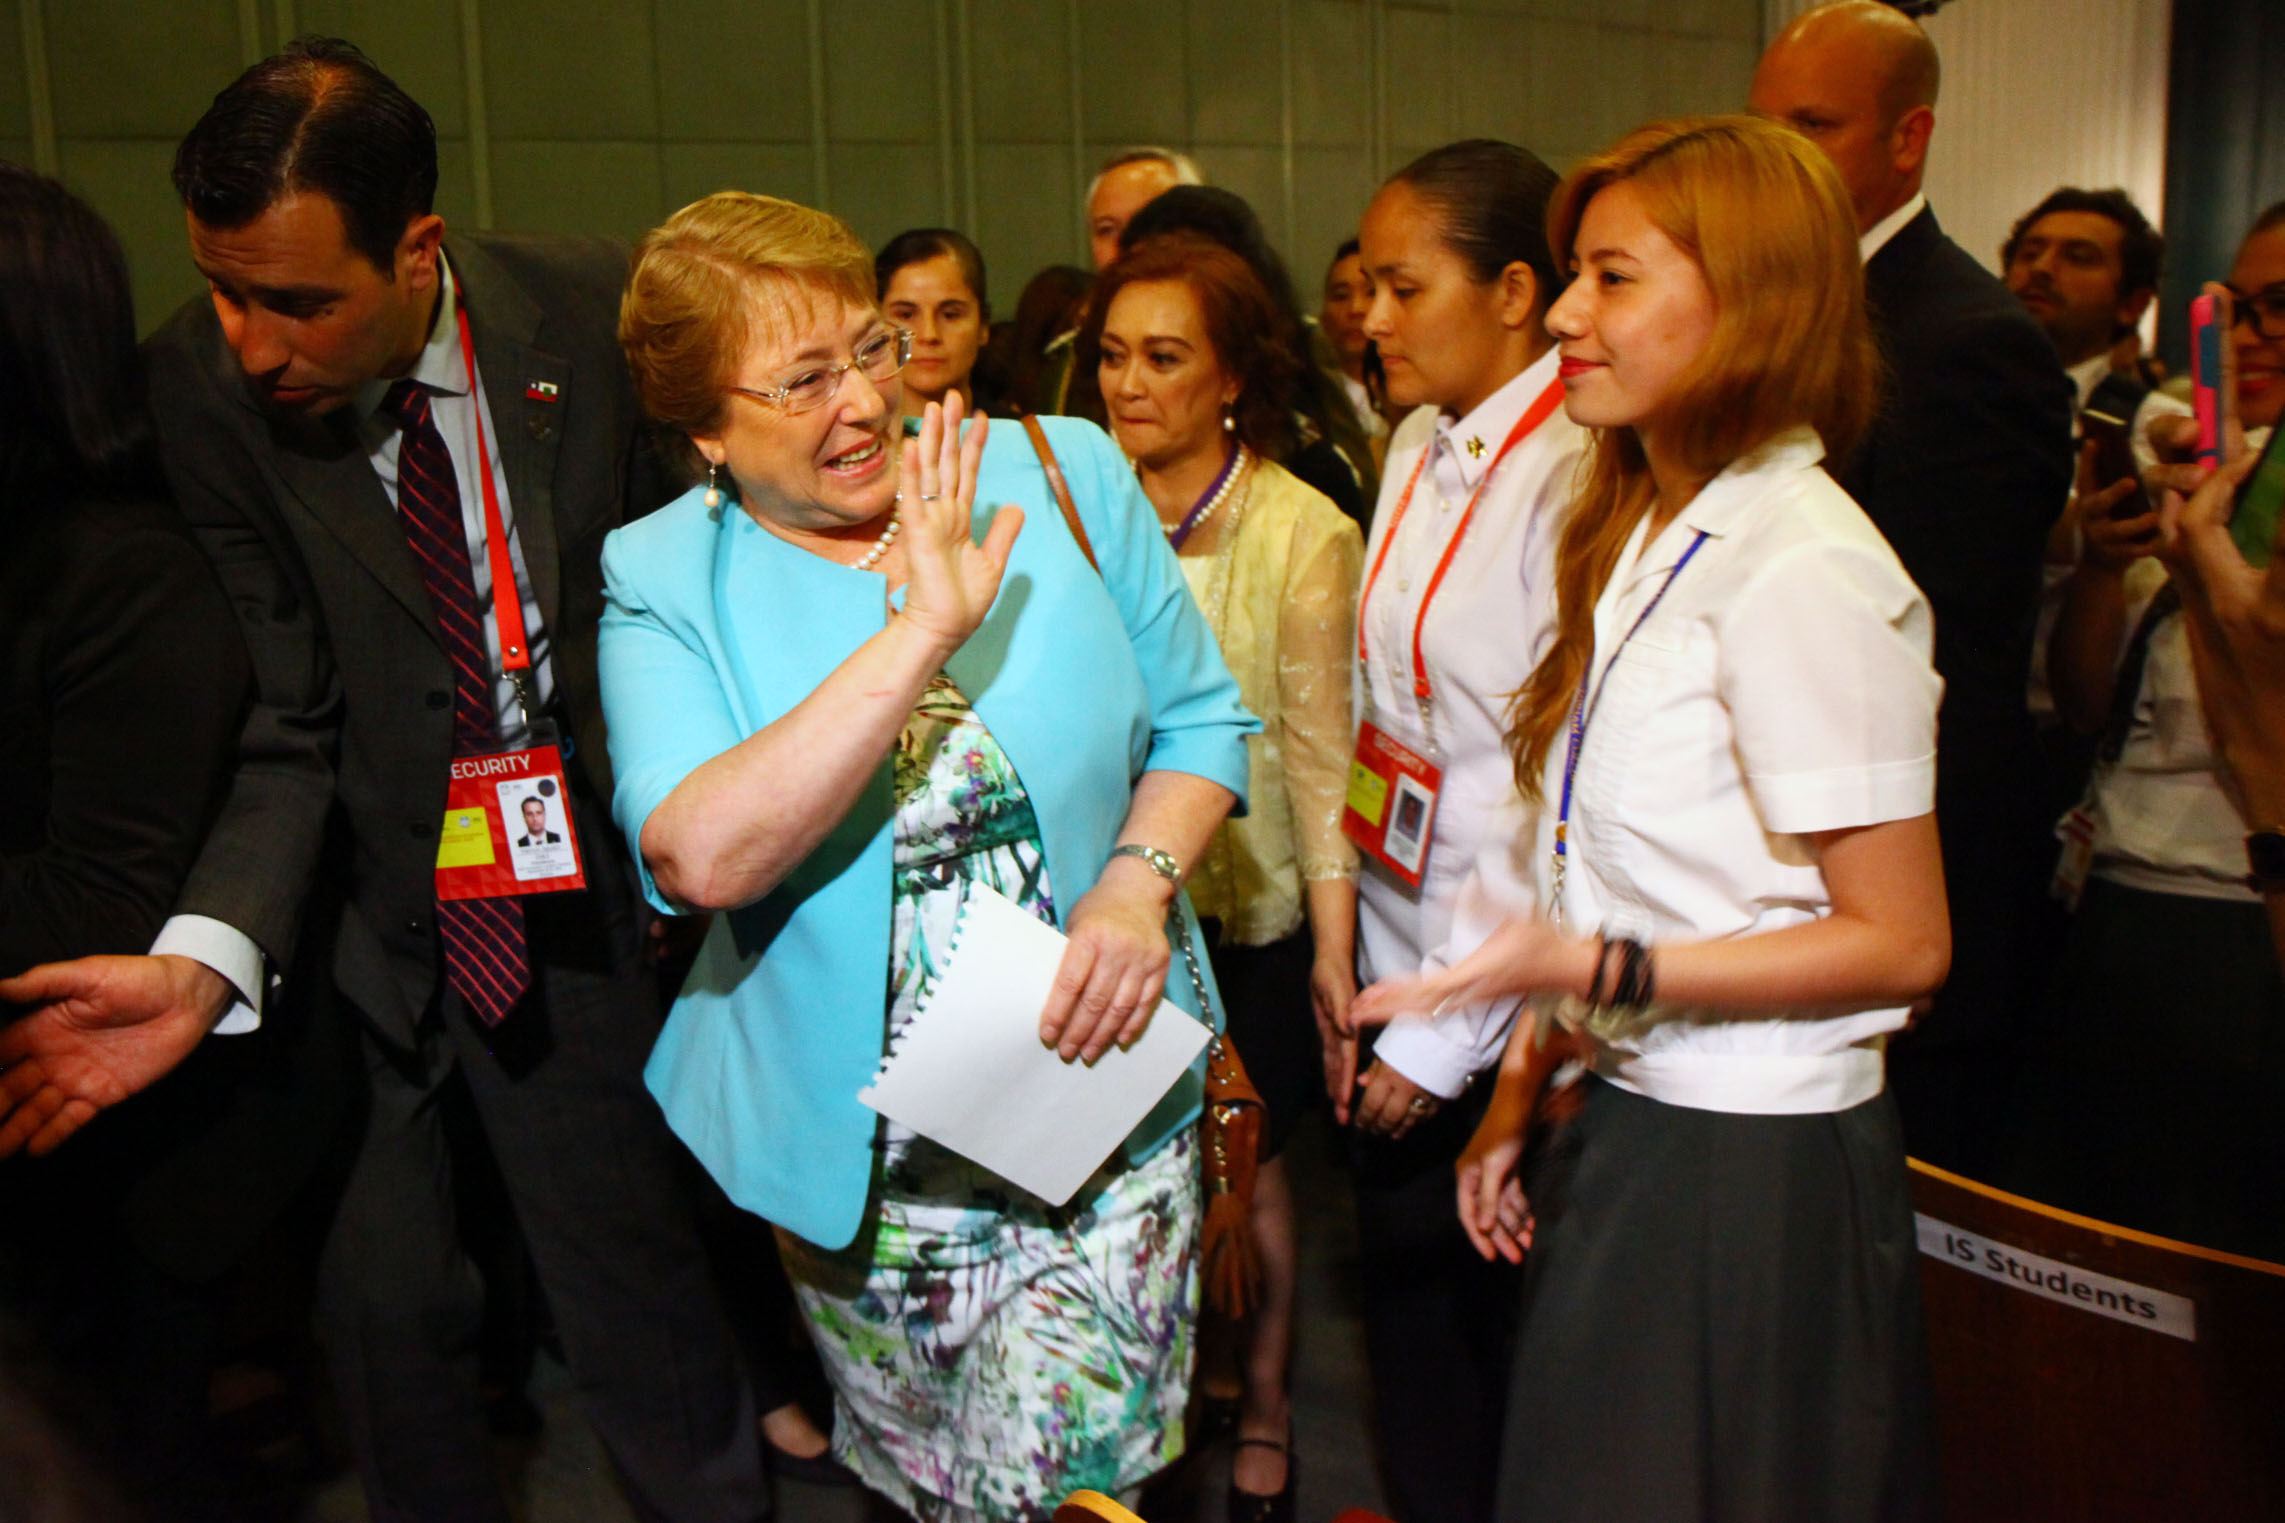 MEETING WOMEN. Chilean President Michelle Bachelet waves at the students of Miriam College during a dialogue with women's groups and young women leaders. The dialogue is part of her State visit to Manila. Phot by Josh Albelda/Rappler